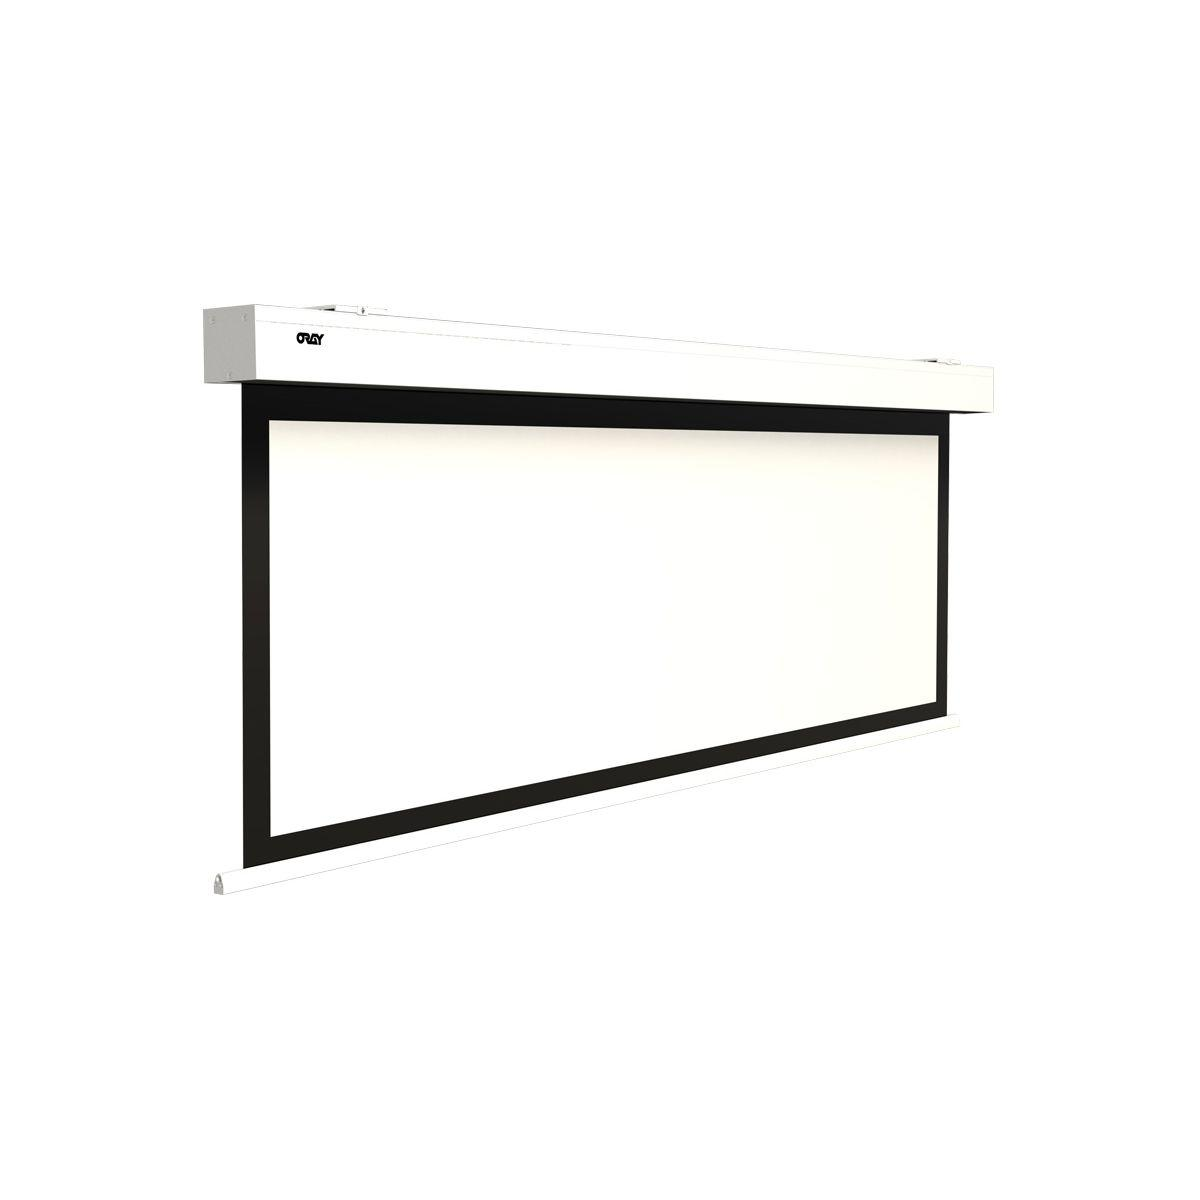 Ecran de projection oray square evolution hc motoris� 174x232 - 10% de remise imm�diate avec le code : deal10 (photo)